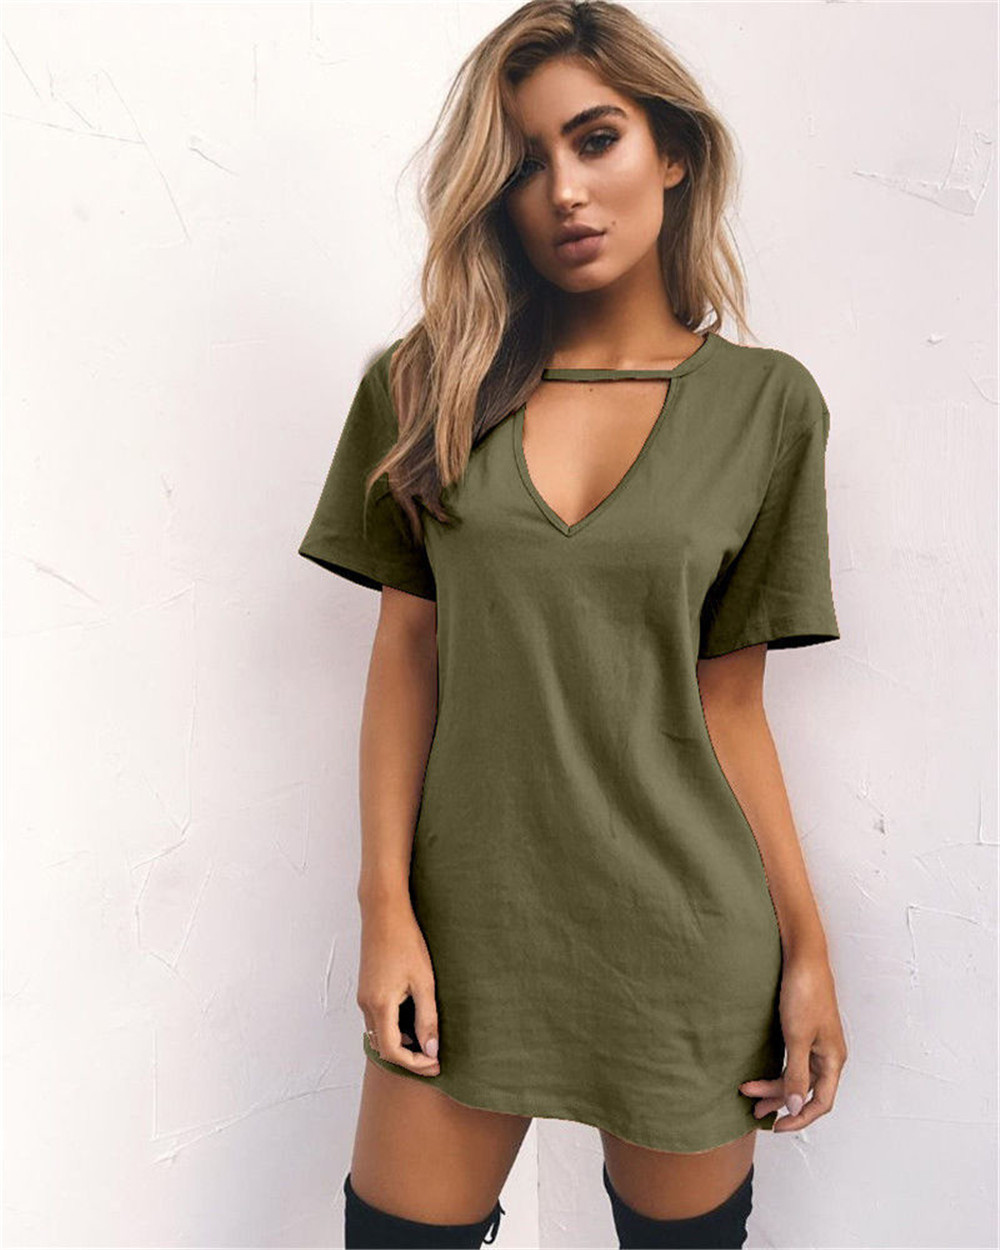 Women Tshirt Dress 2019 Choker V-neck Summer Dresses Short Sleeve Casual Sexy Halter Loose Boho Beach Dress Vestidos Plus Size